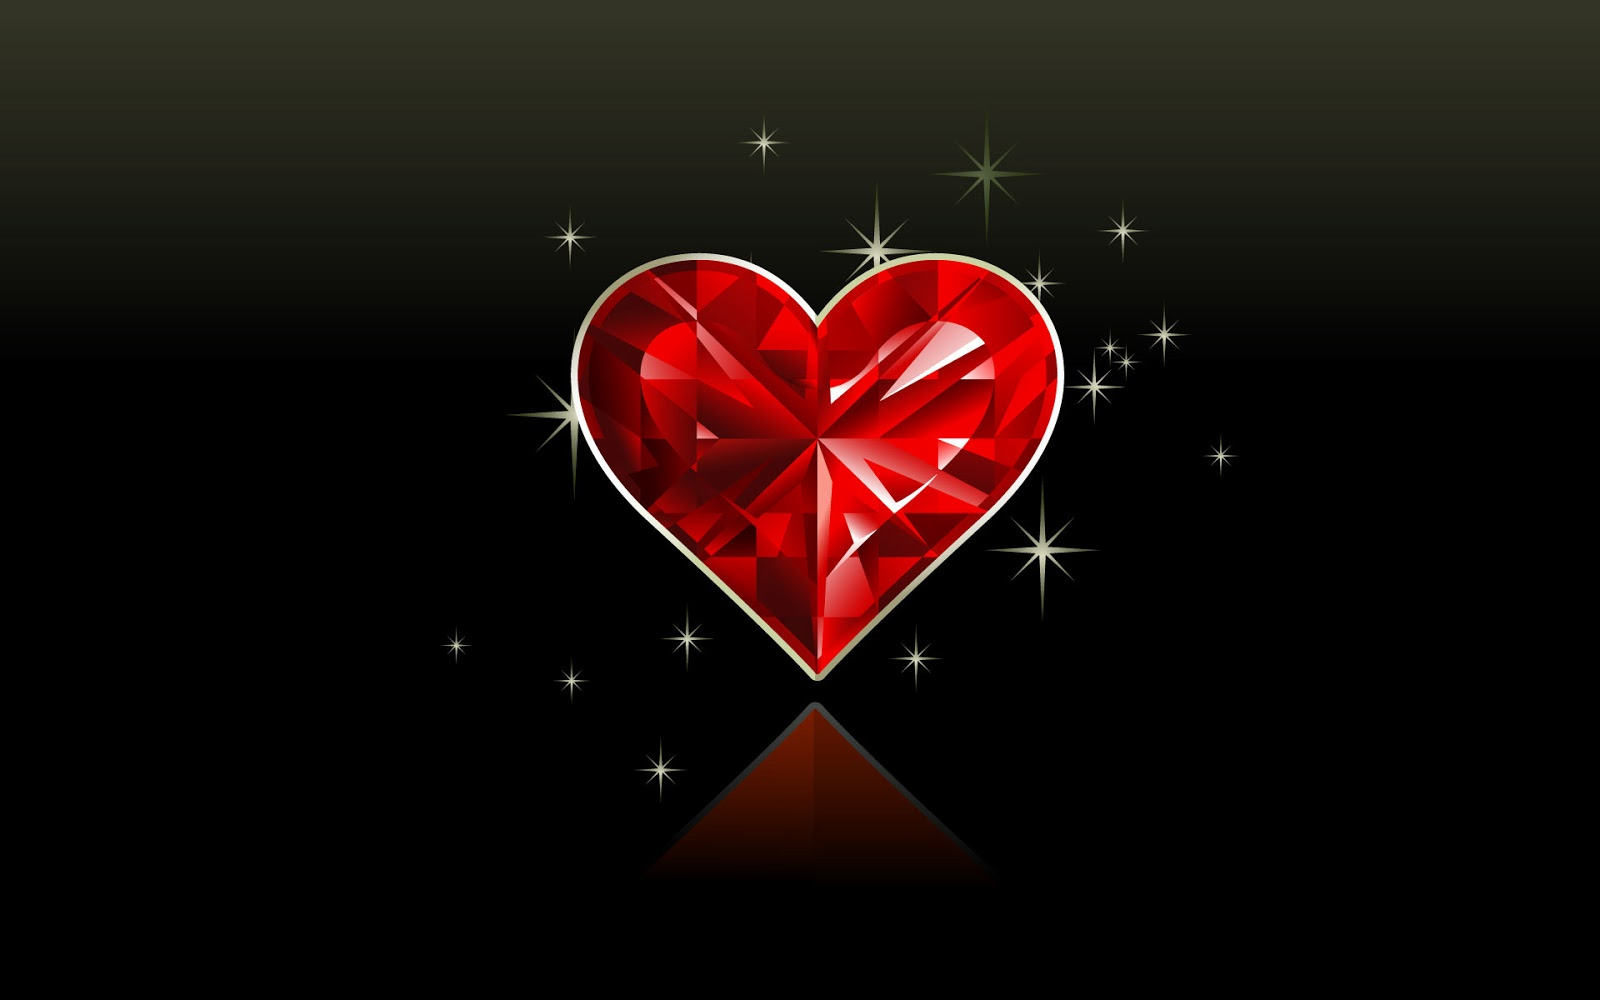 Love Wallpaper For Background : Heart love background, wallpaper hearts love Free Stock Photos Web